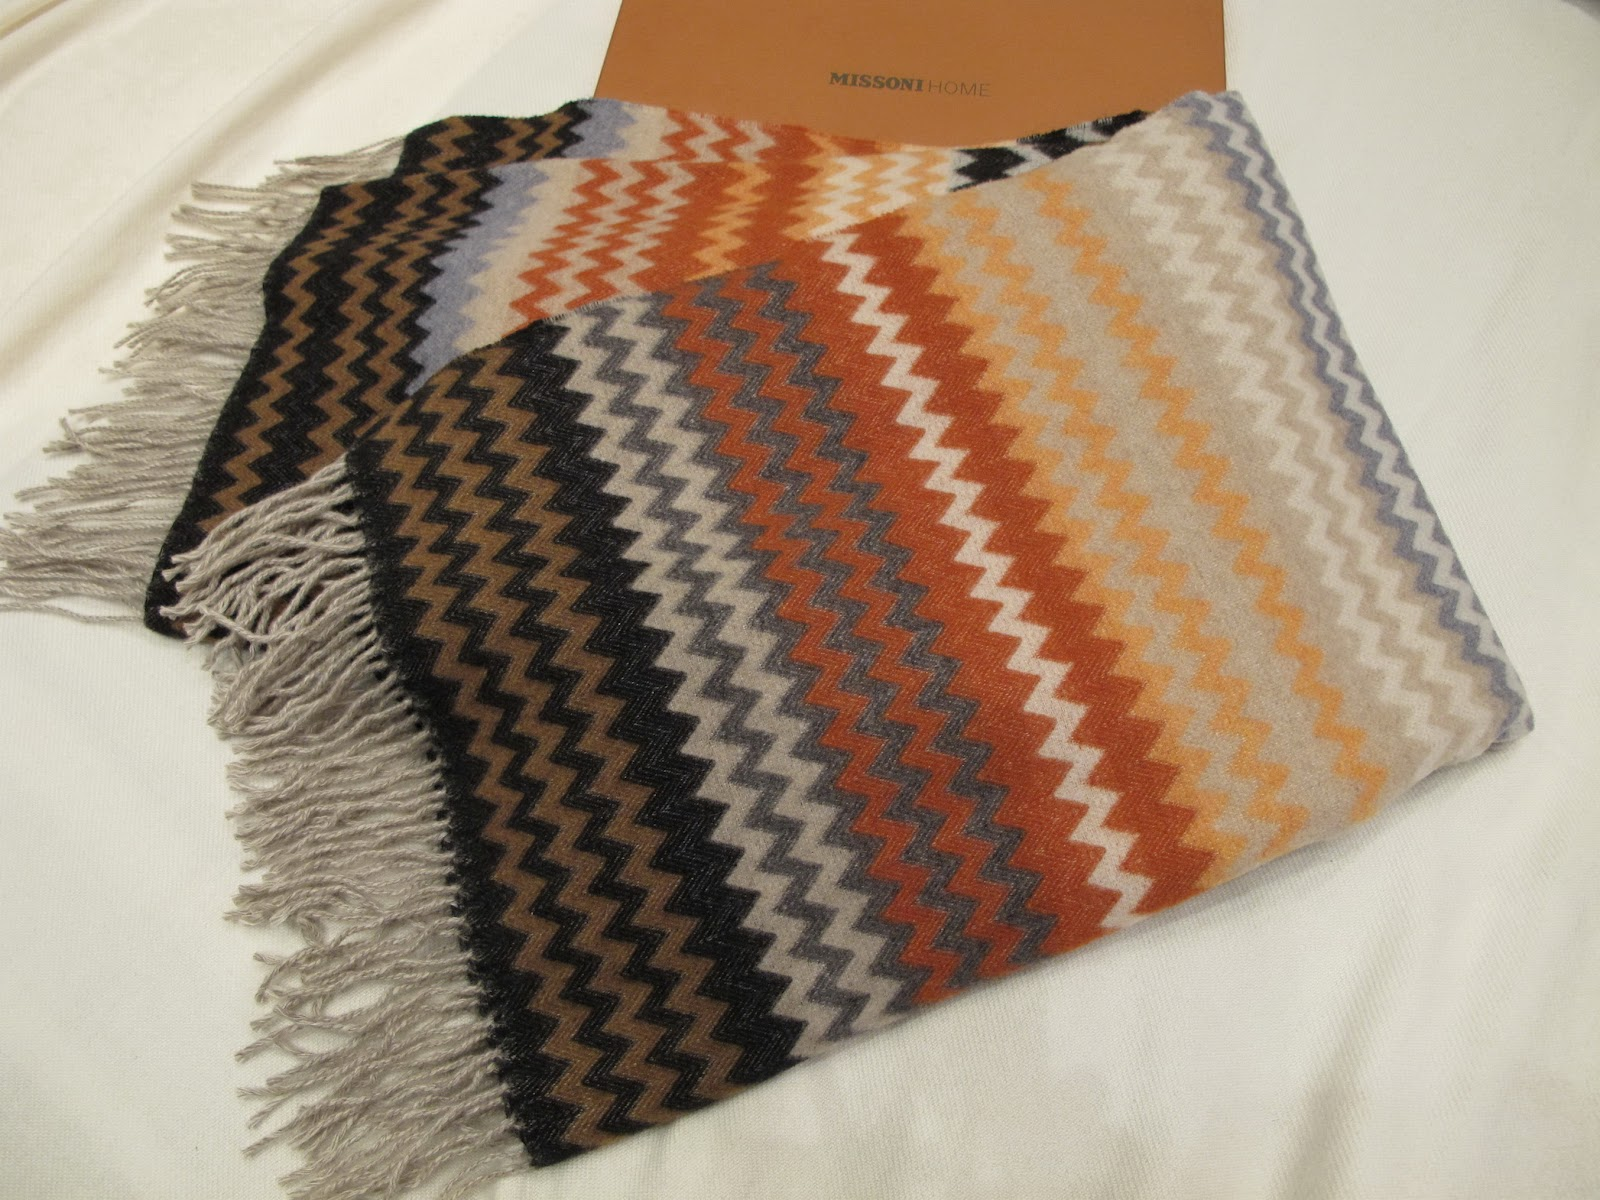 Bedding and Blankets: Missoni Bedding Humbert Throw Blanket in